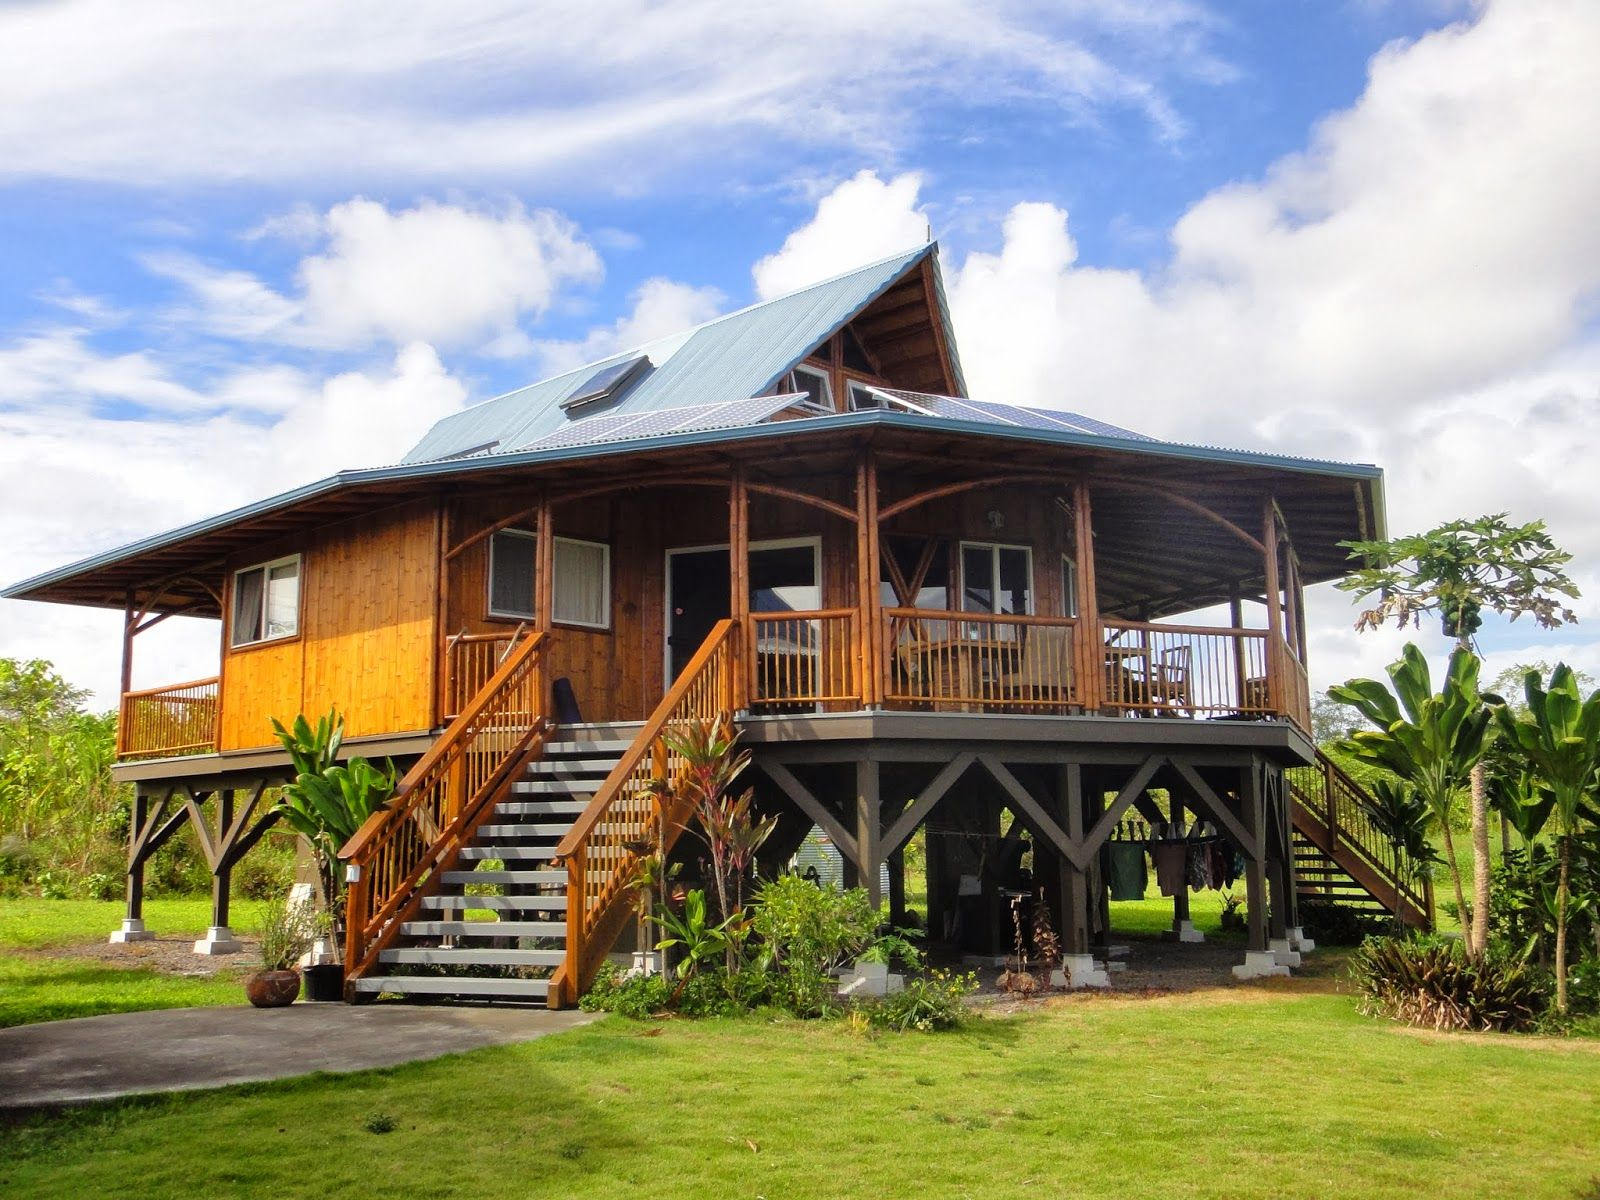 Different Types of Offgrid Homes Bamboo house, Small